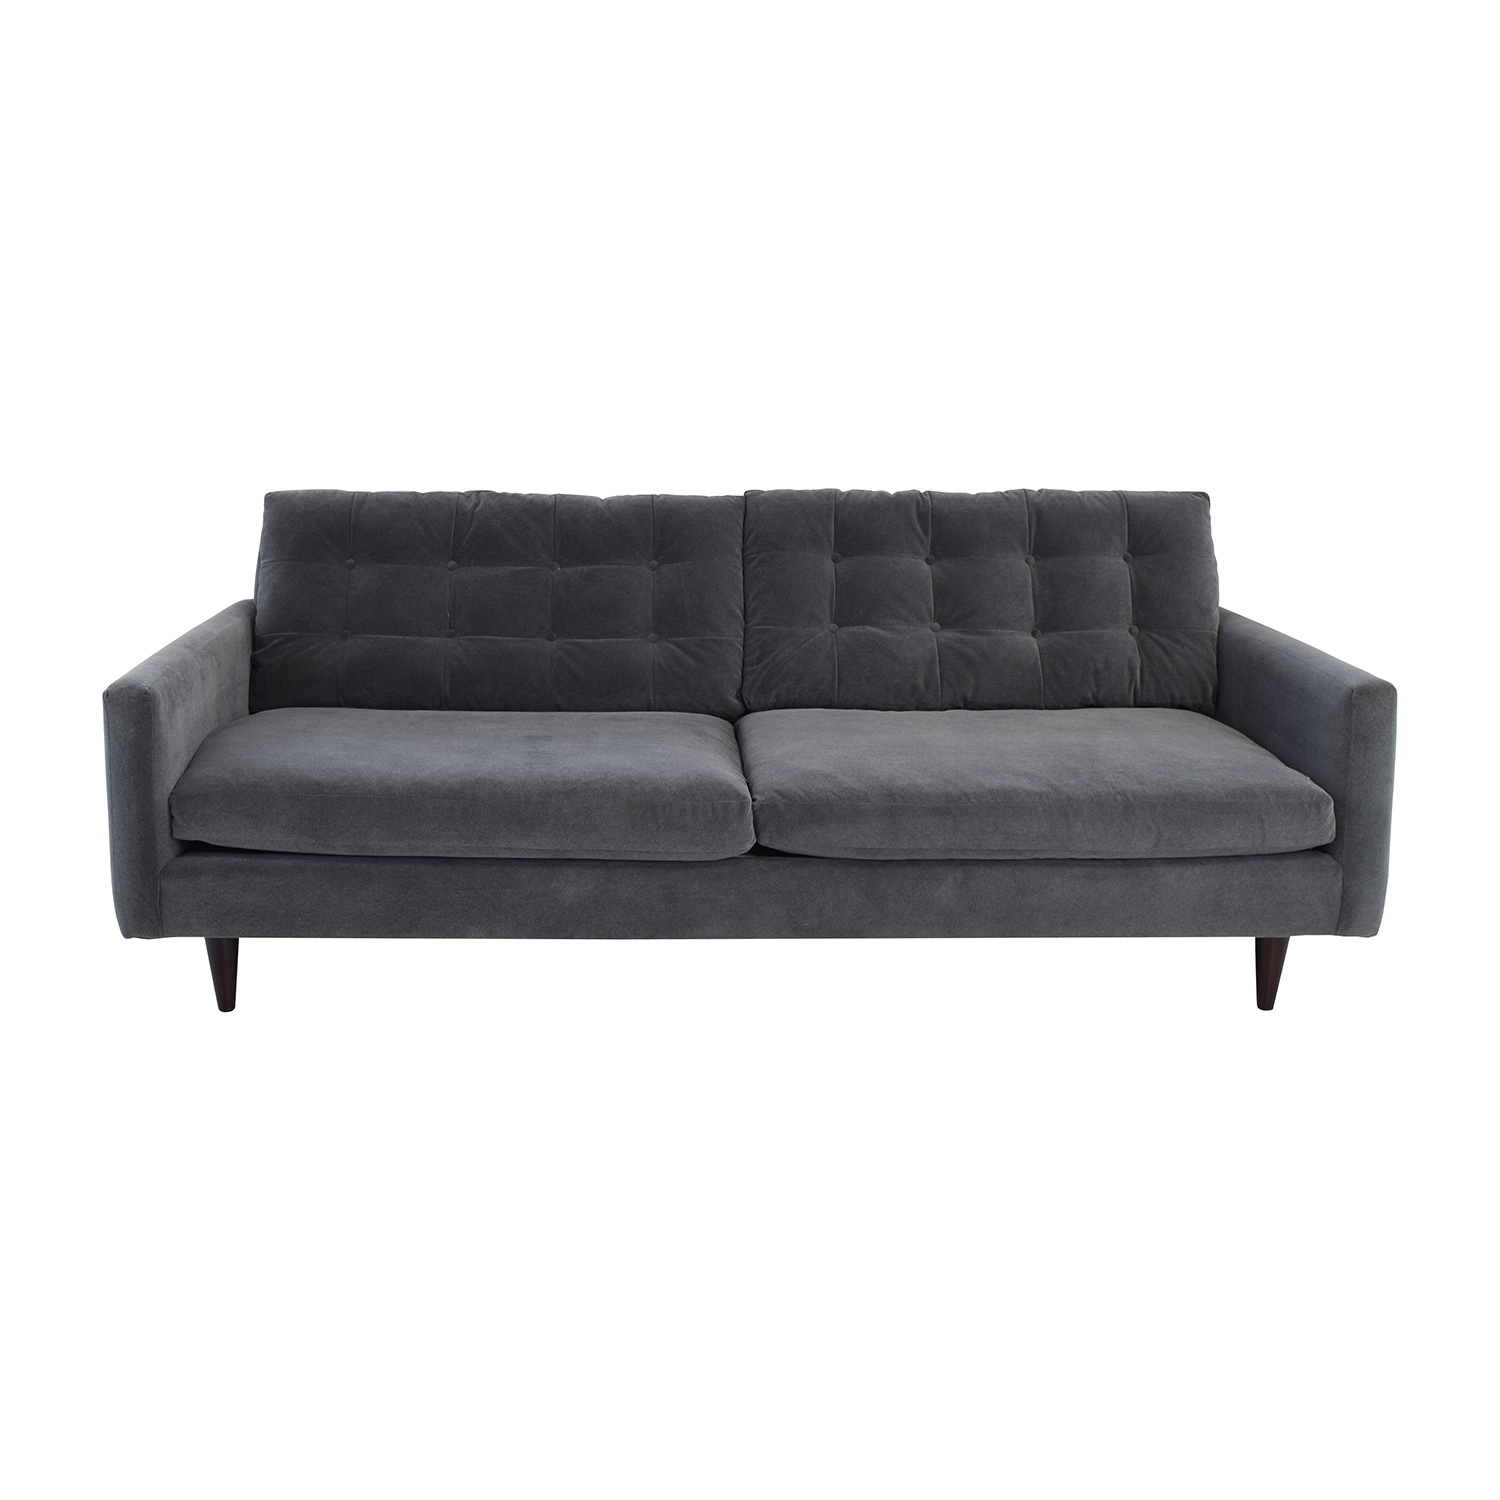 Crate and Barrel Crate & Barrel Petrie Mid Century Grey Sofa Sofas